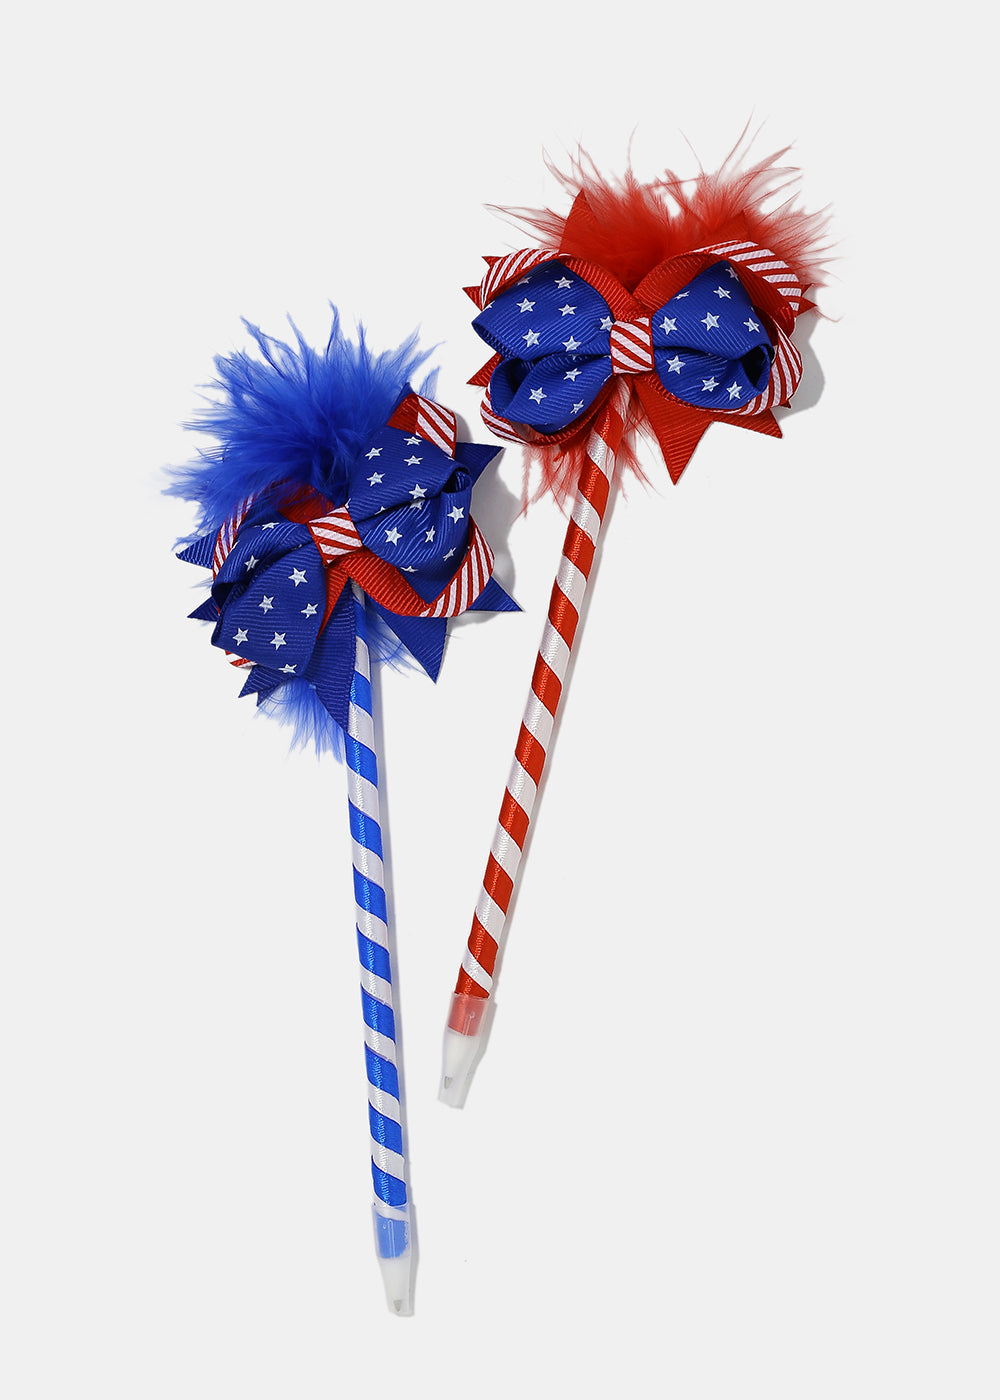 American Flag Striped Pen